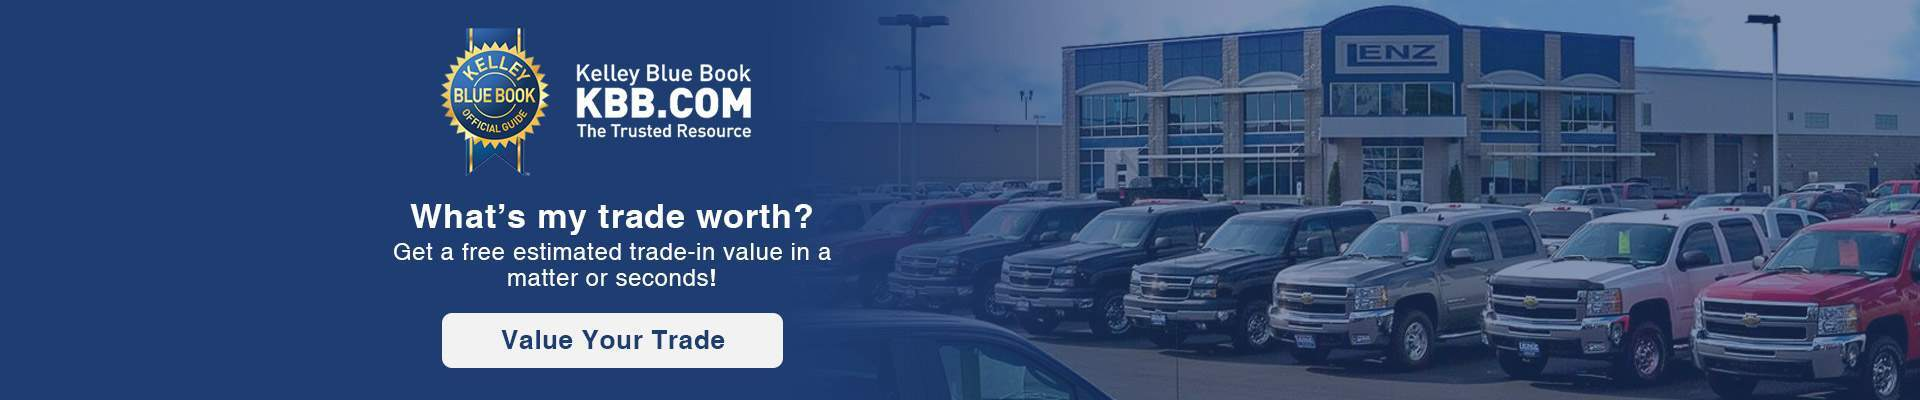 Used Truck Dealership Fond du Lac WI | Used TrucksLenz Truck Center